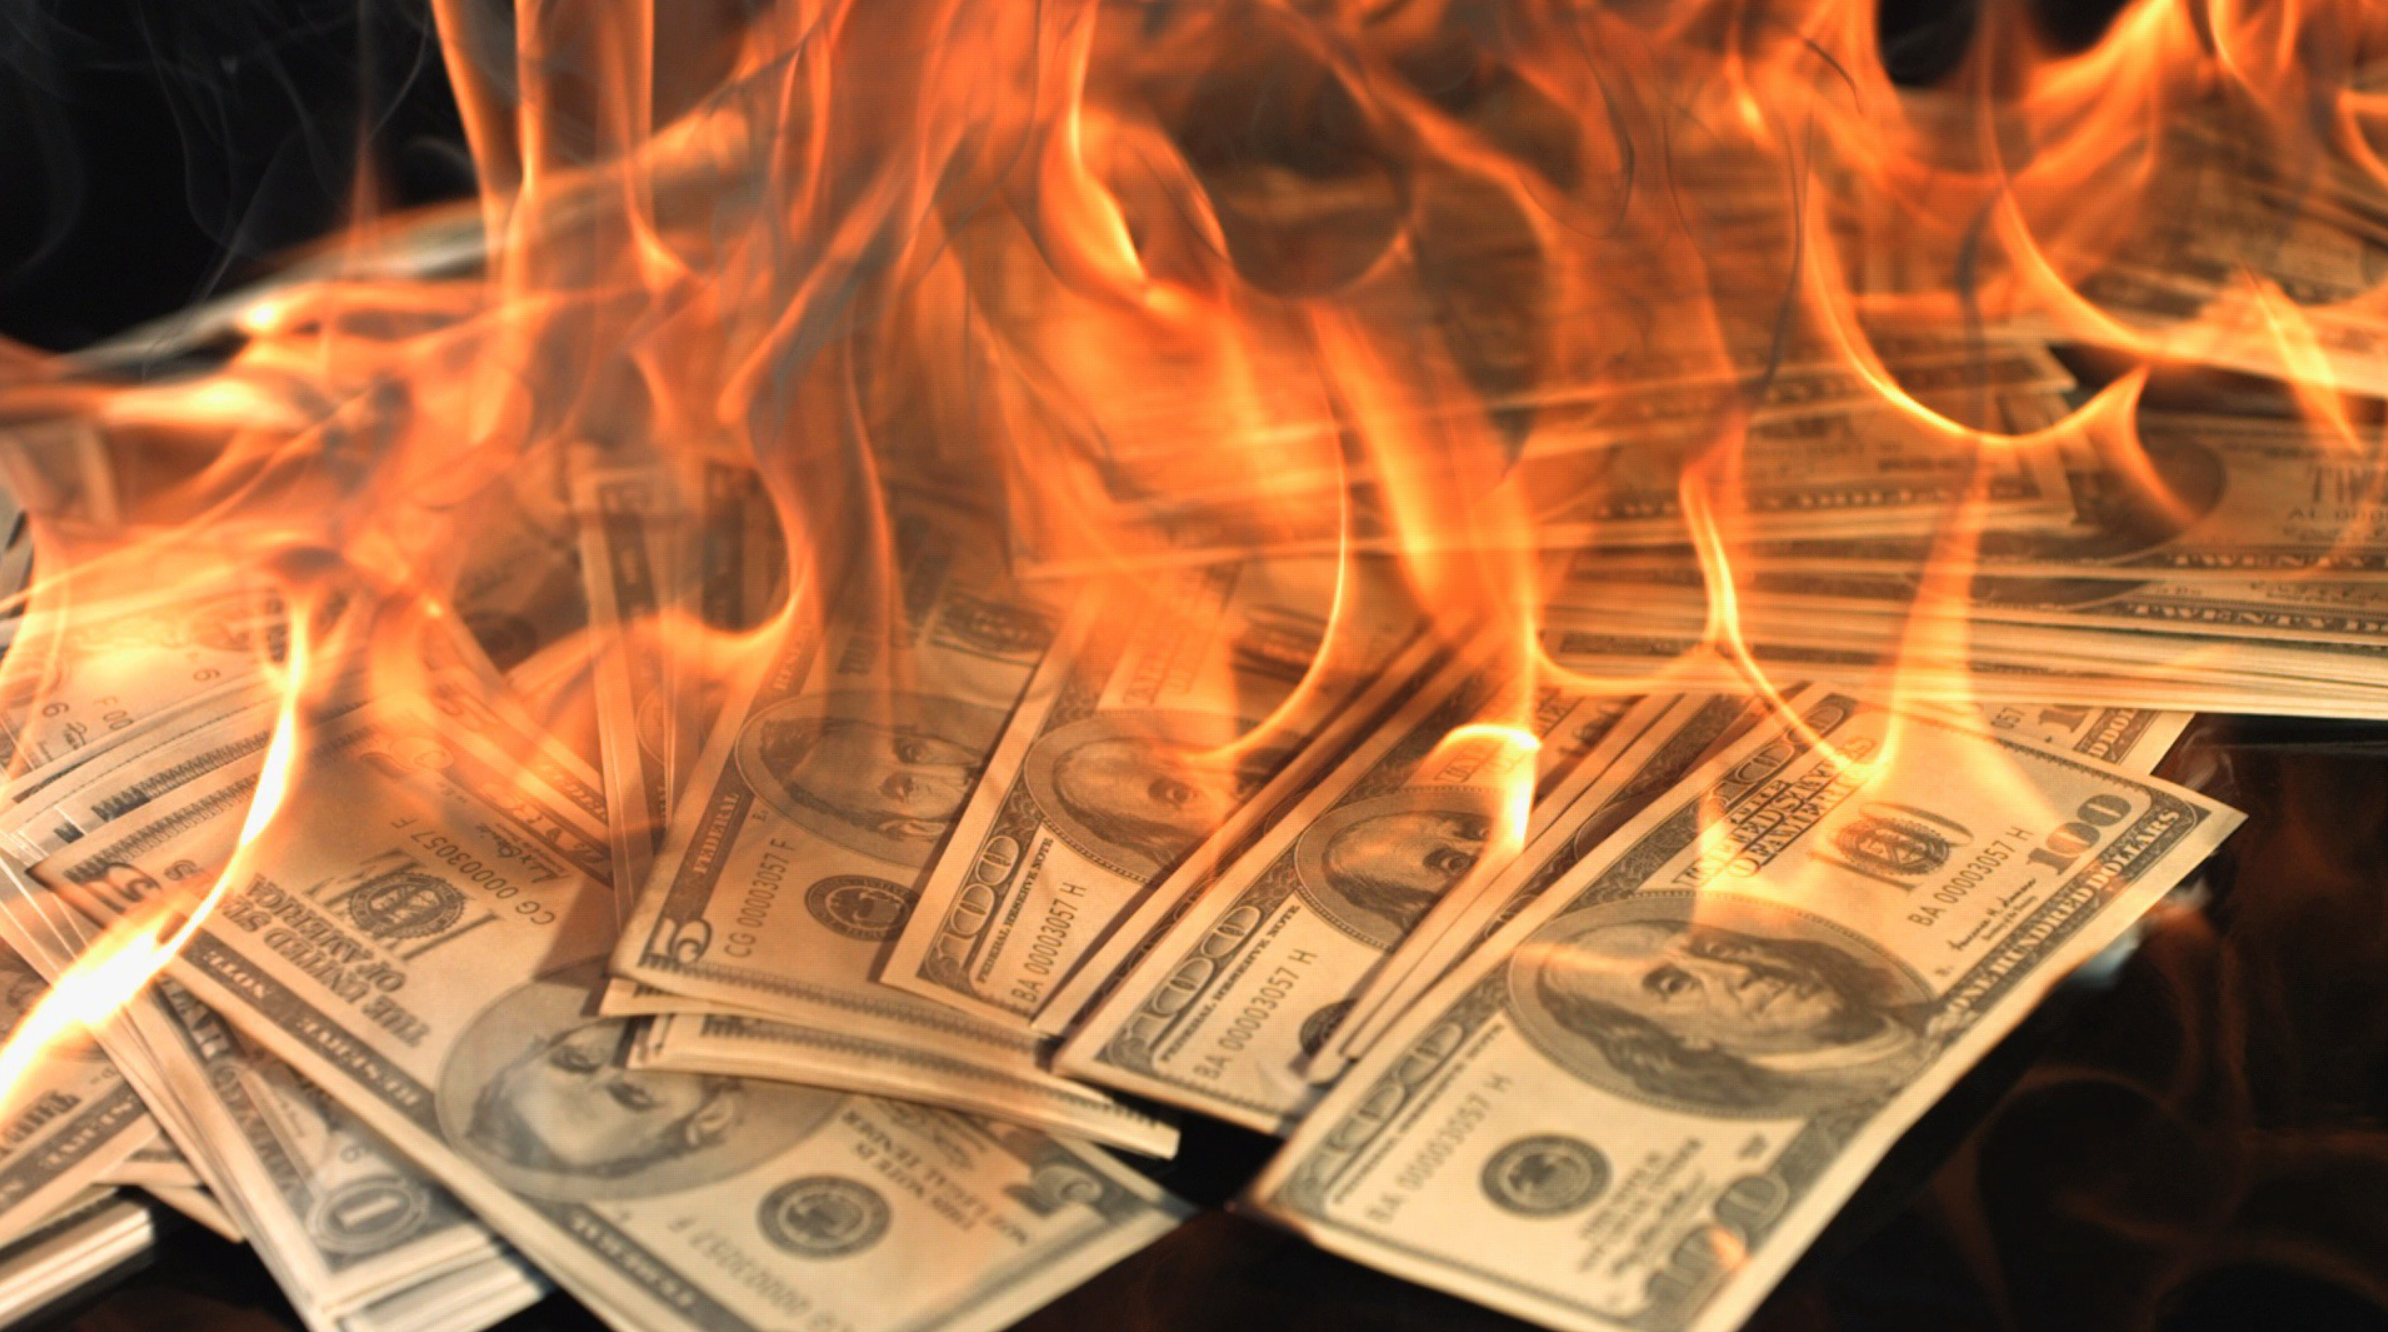 Trump campaign burning money with ads in states he can't win